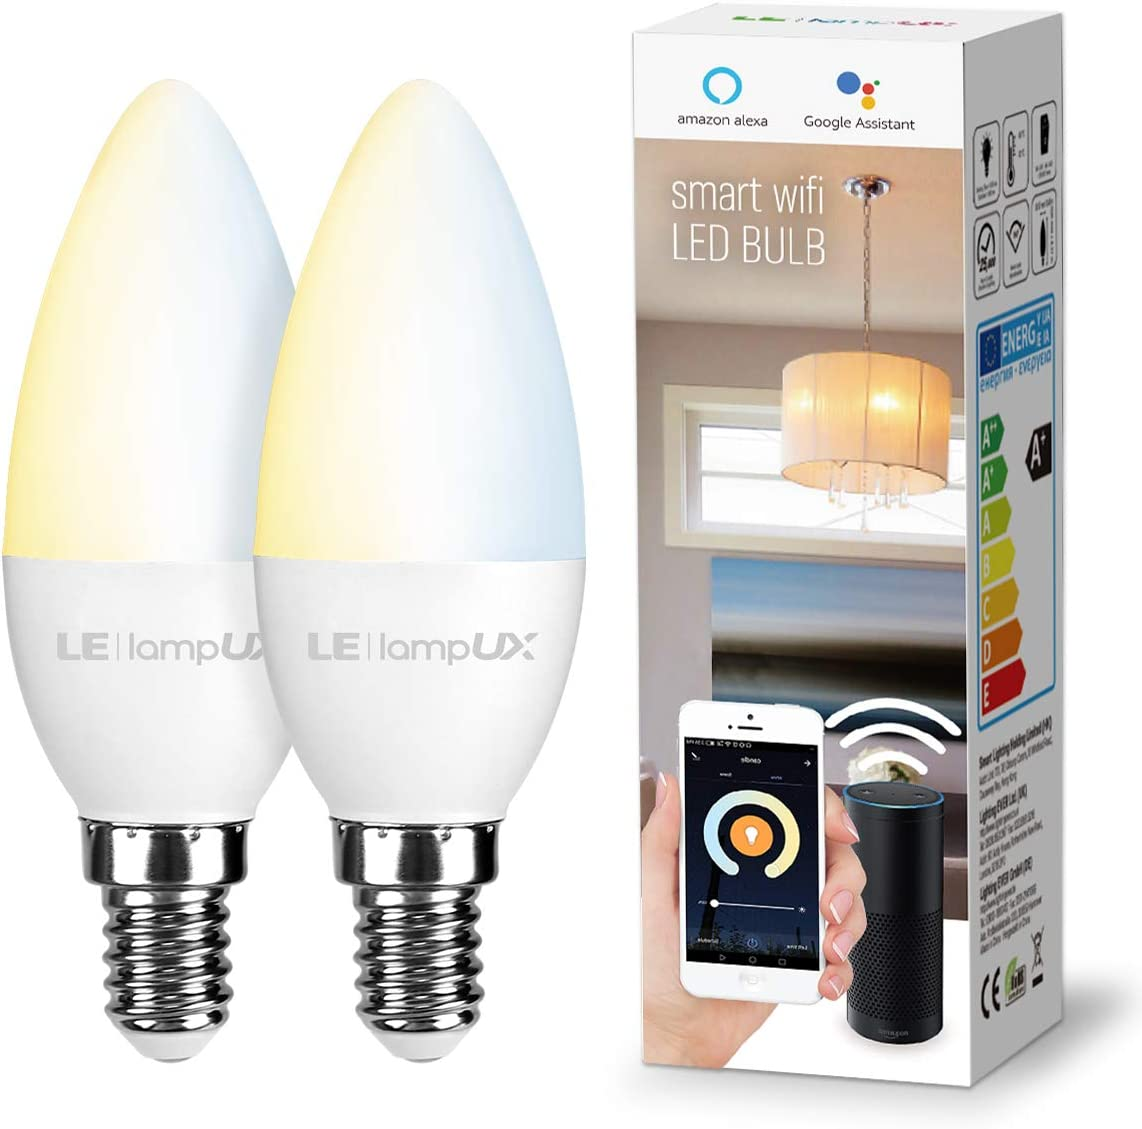 LE LampUX Smart LED Light Bulb, E12 Candelabra Light Bulbs, Works with Alexa Google Home, Tunable White 2700K-6500K, Dimmable with App, No Hub Required, 40 Watt Equivalent, 2.4GHz WiFi, Pack of 2